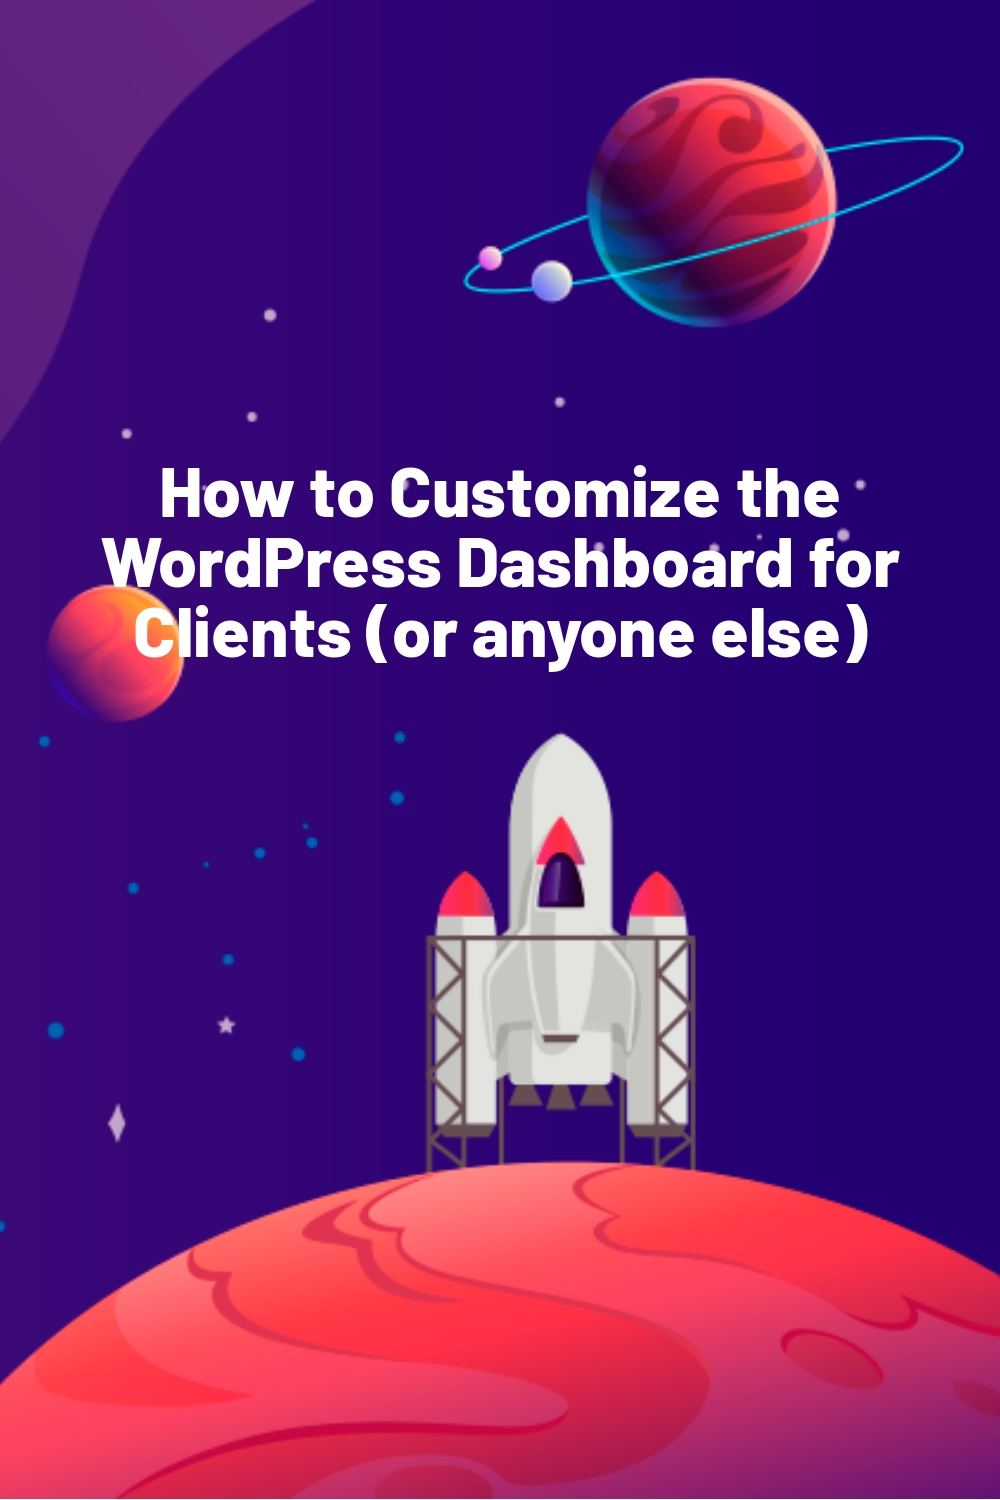 How to Customize the WordPress Dashboard for Clients (or anyone else)